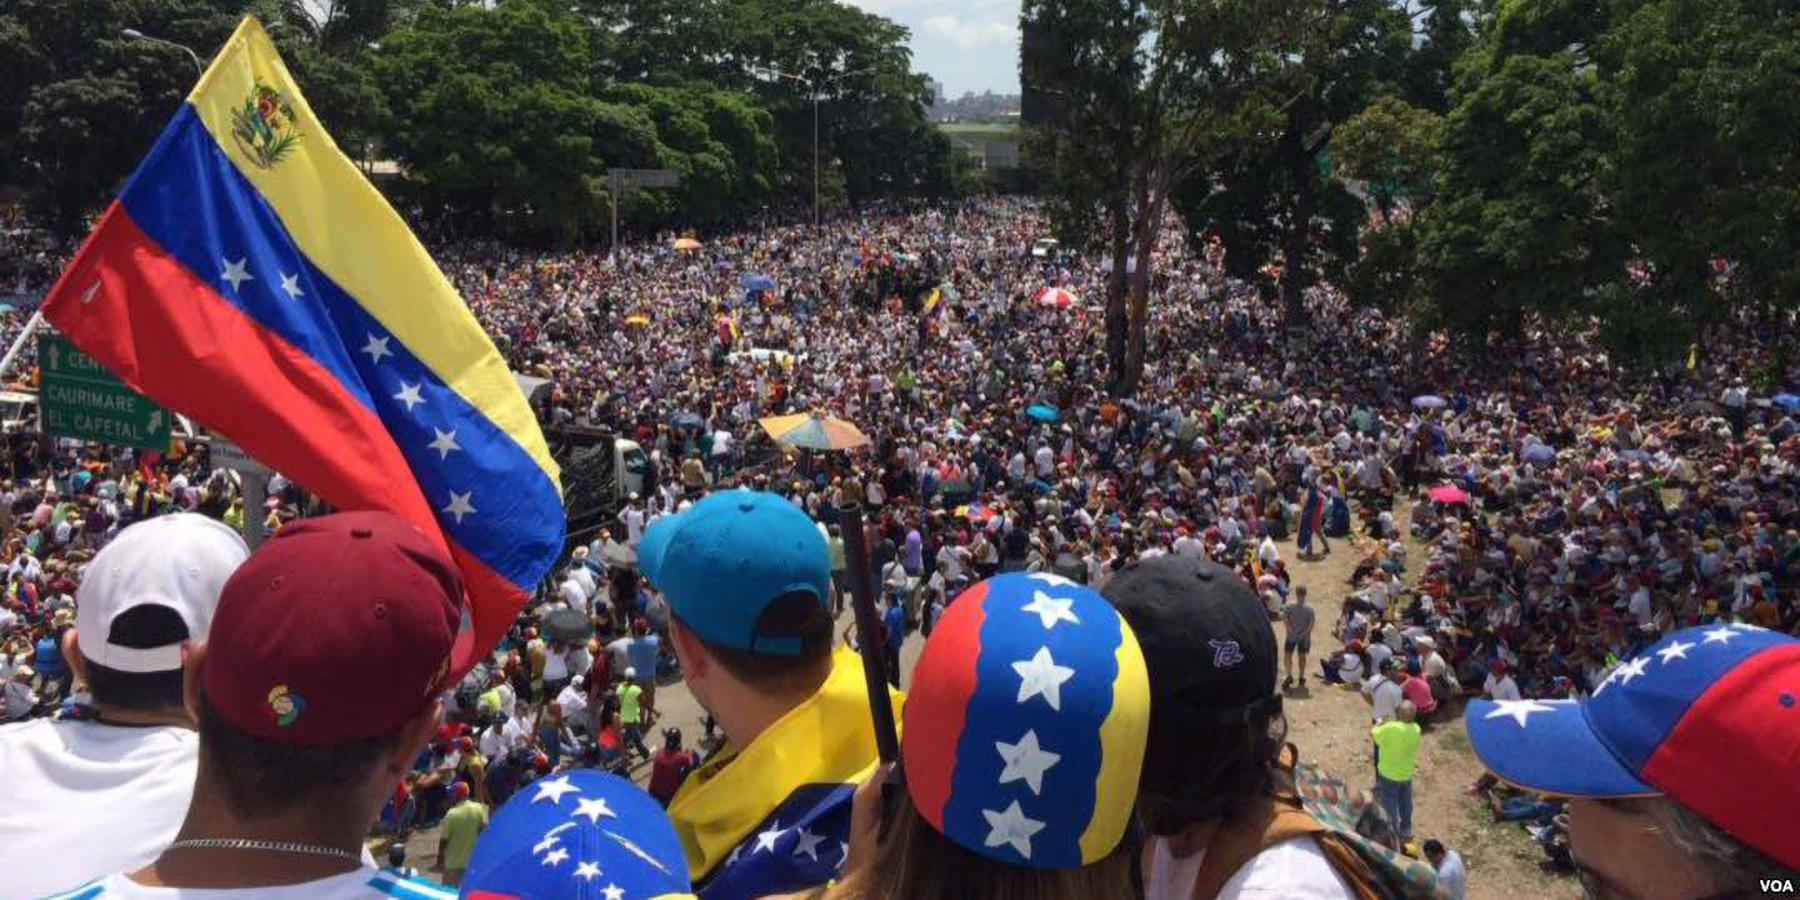 Millions of Venezuelans marching on May 20, 2017 during the We Are Millions march. - Voice of America